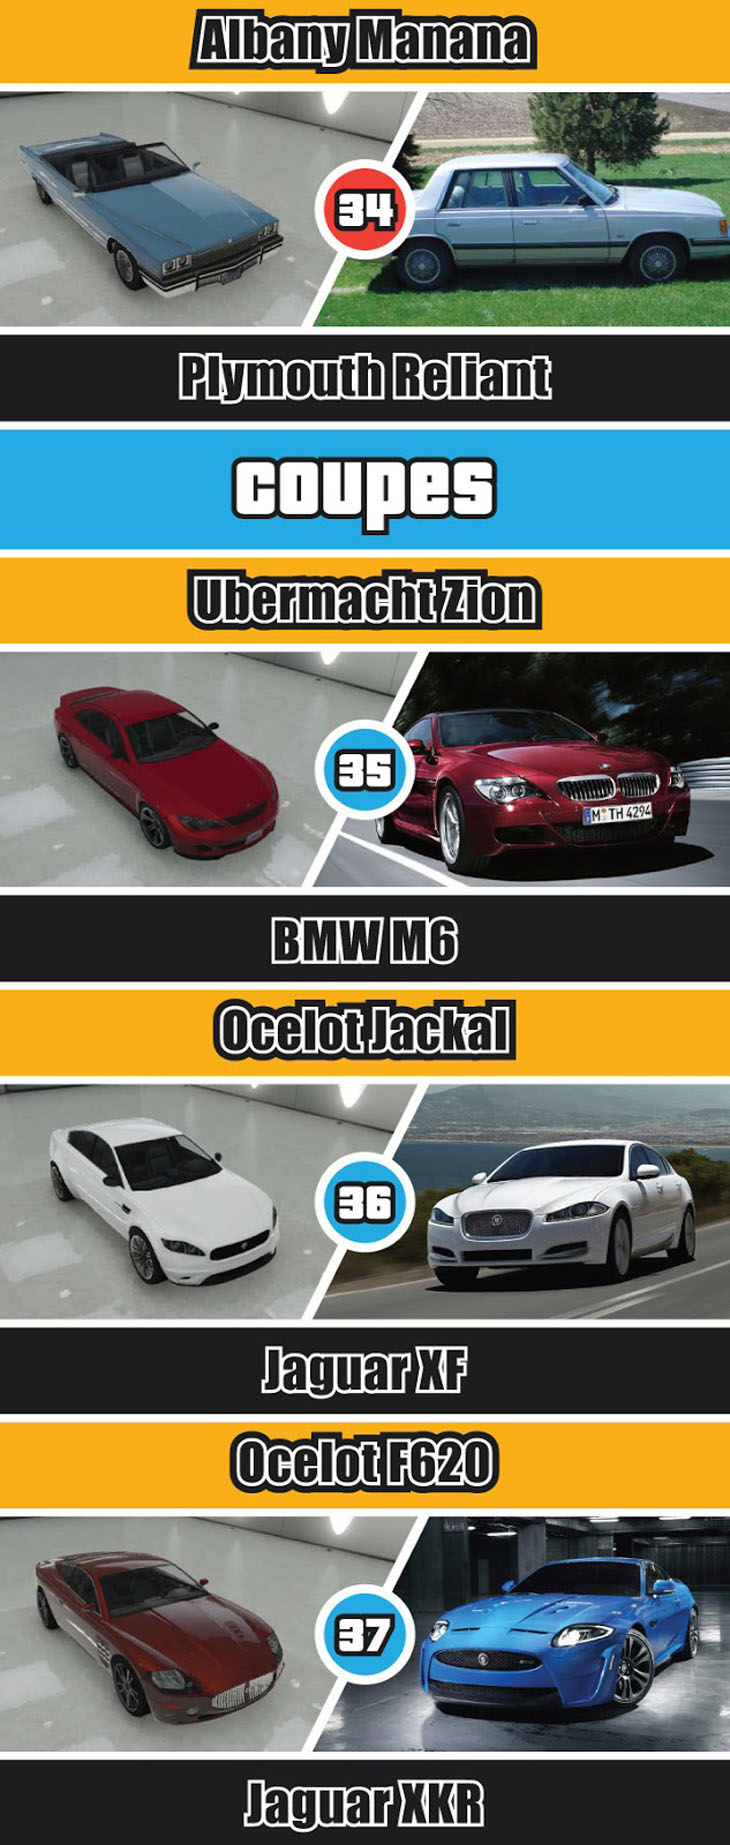 50 Gta V Cars And Their Real World Counterparts Diseno Art